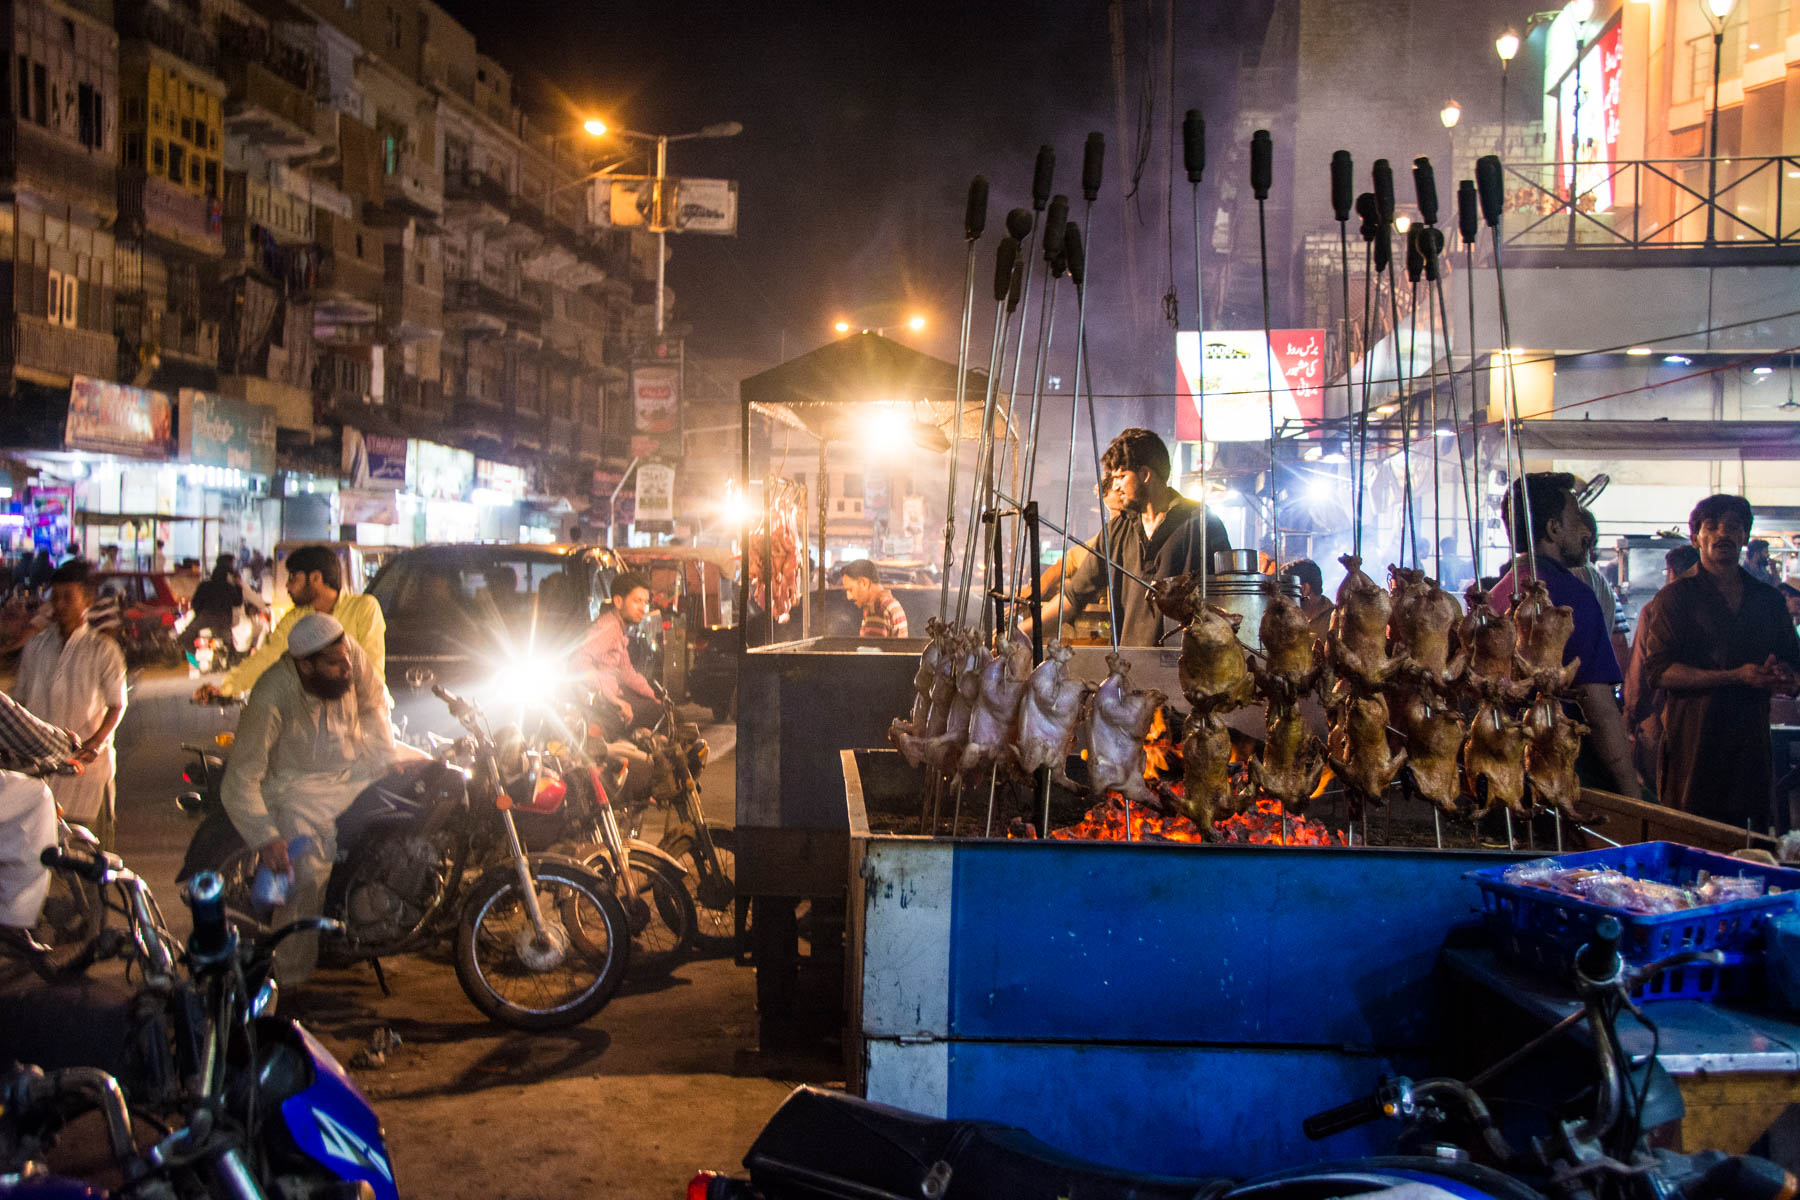 Street food at night on Burns Road in Karachi, Pakistan - Lost With Purpose